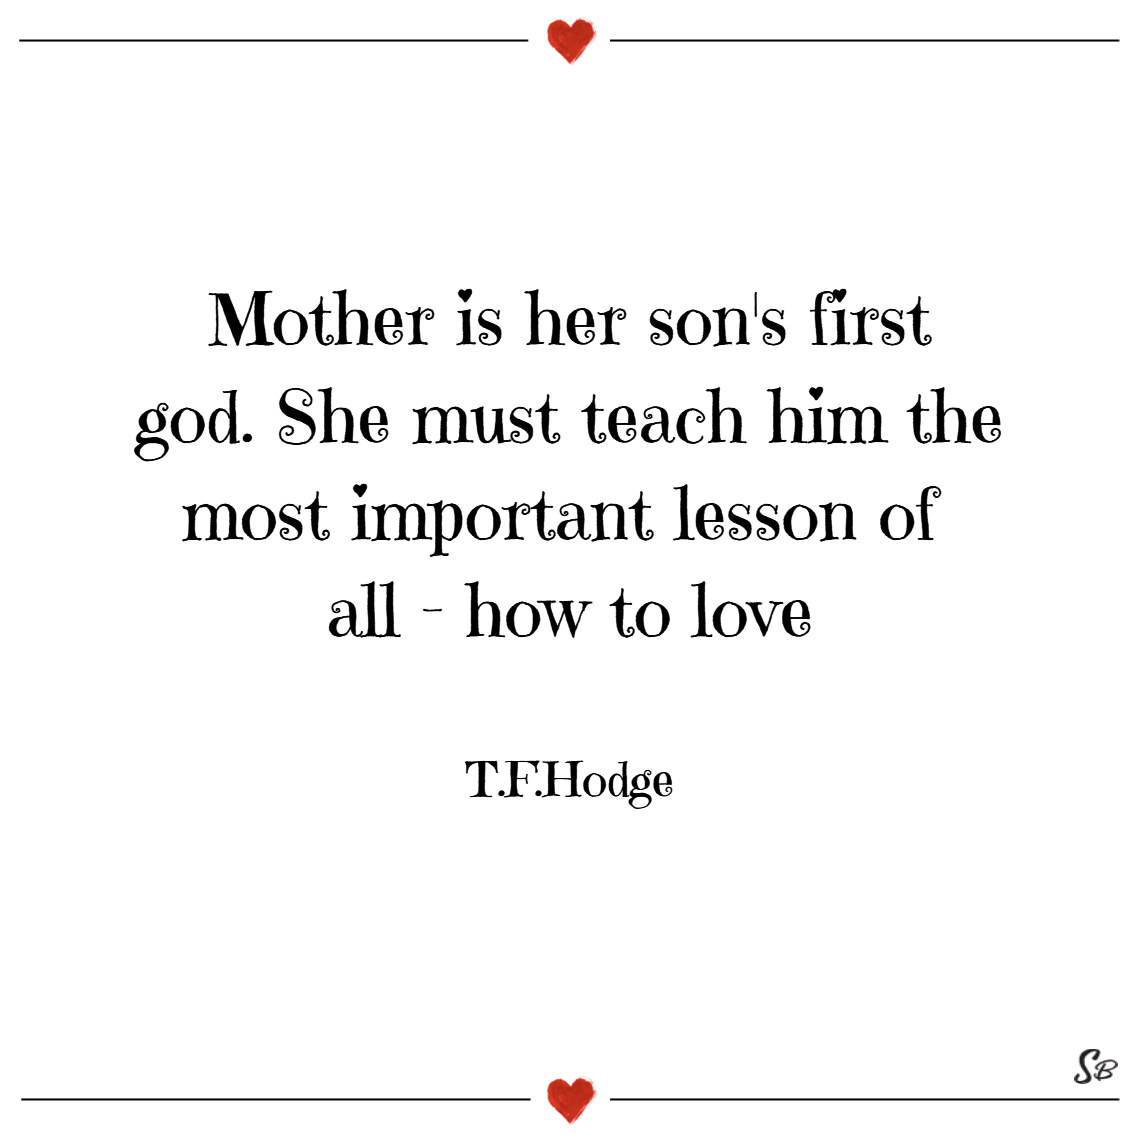 Mother is her son's first god. she must teach him the most important lesson of all how to love. – t. f. hodge